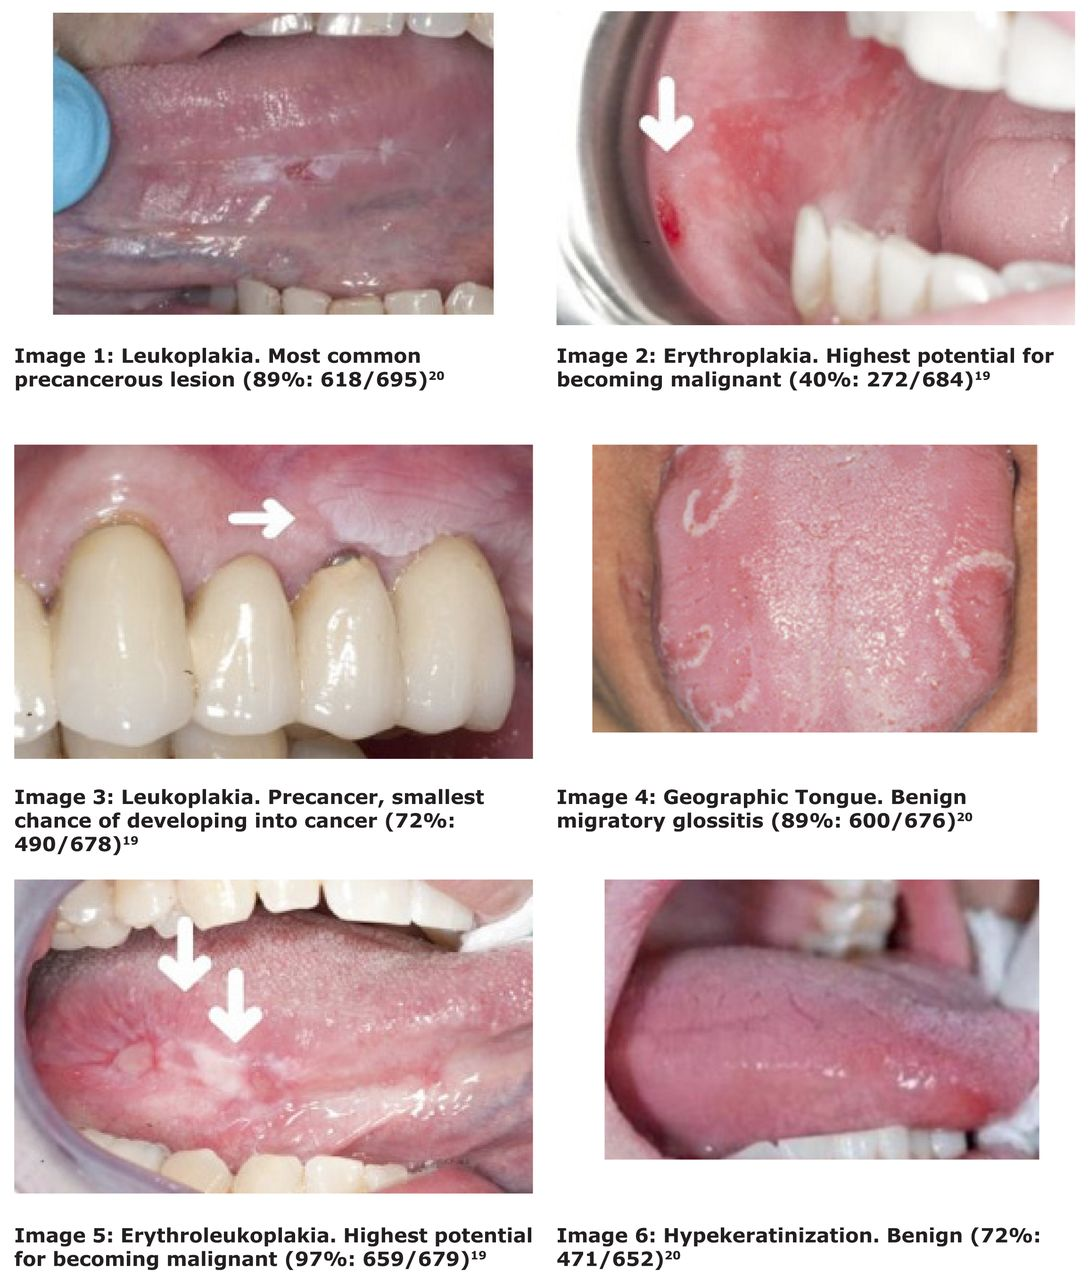 Detection Of Early Stage Oral Cancer Lesions A Survey Of California Dental Hygienists Journal Of Dental Hygiene